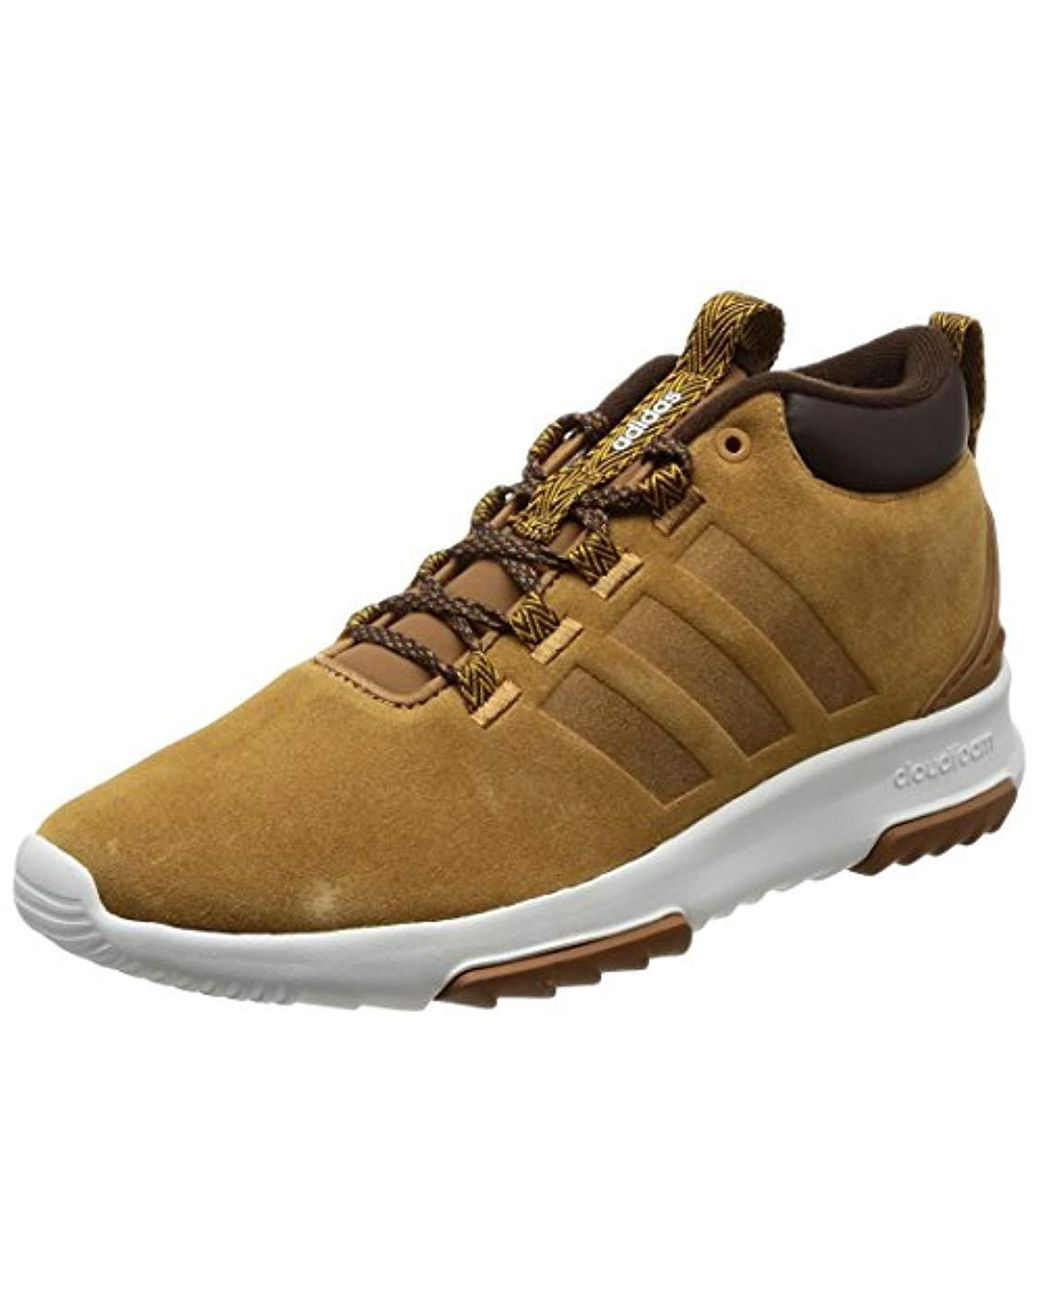 adidas Synthetic Cf Racer Mid Wtr Fitness Shoes in Brown for ...